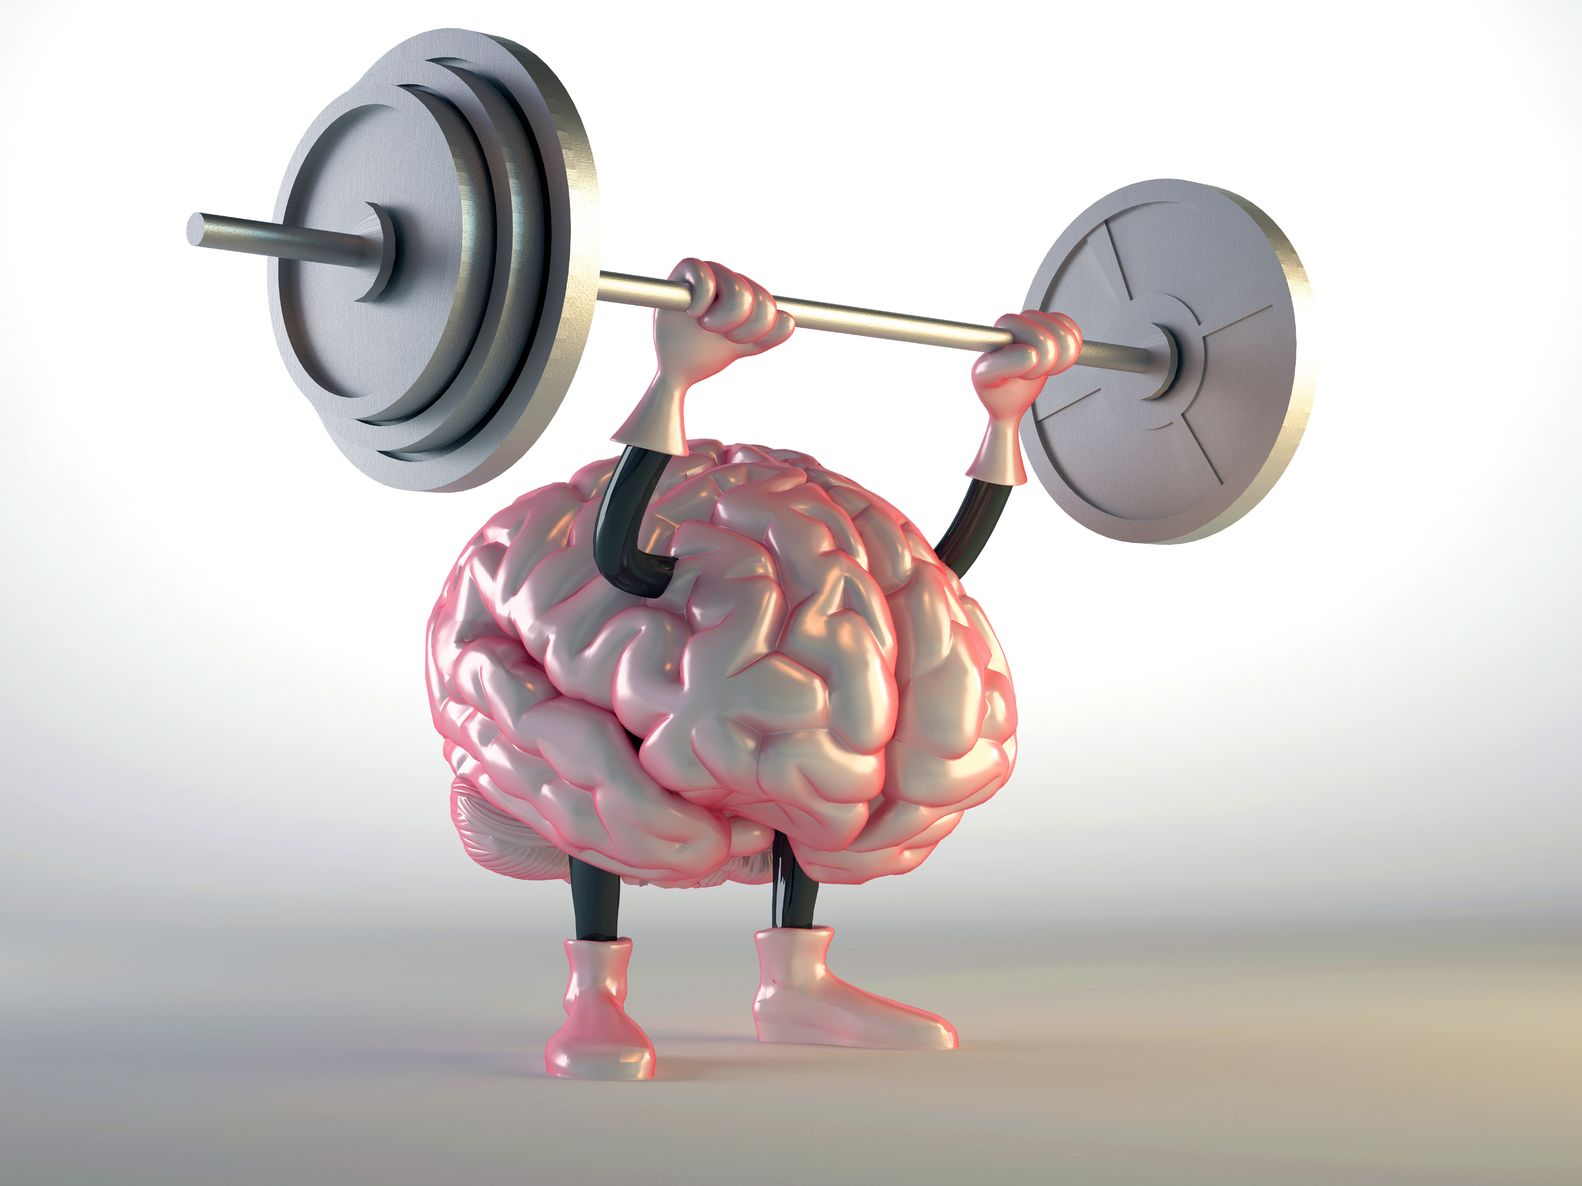 Brain Health https://www.info-on-high-blood-pressure.com/Brain-Health.html